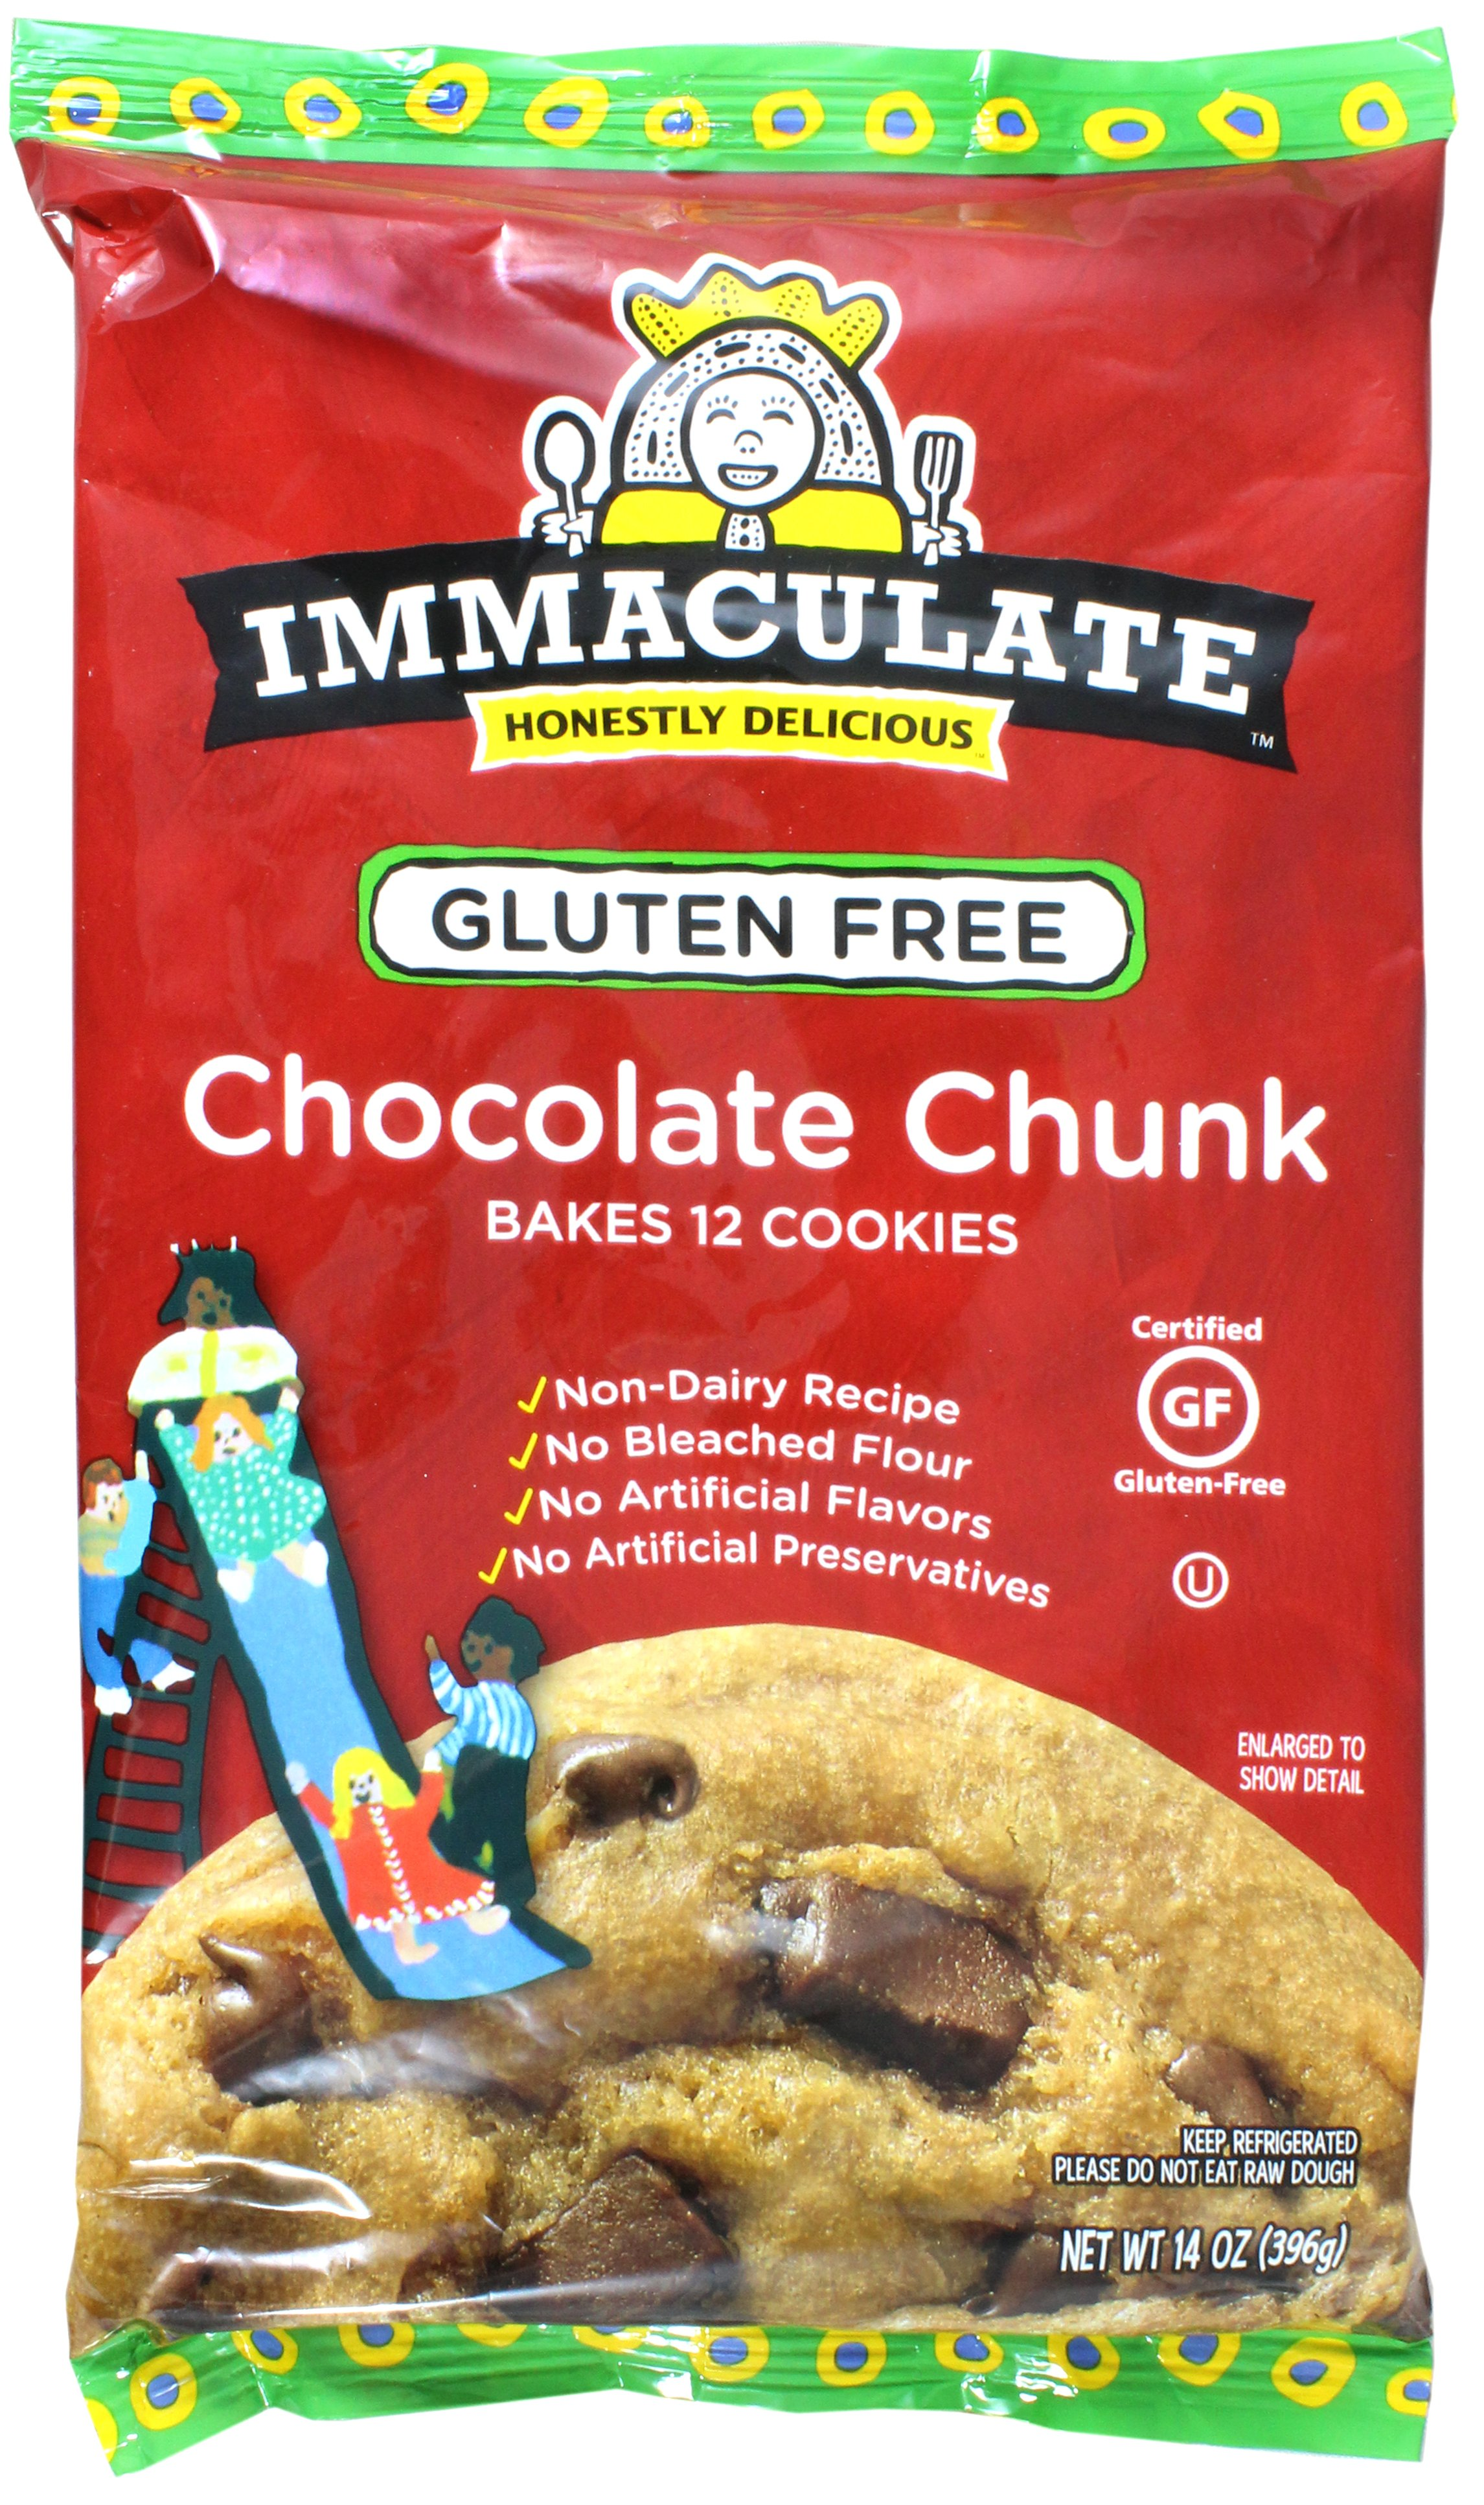 Immaculate baking gluten free chocolate chunk cookie dough shop immaculate baking gluten free chocolate chunk cookie dough shop cookie dough at heb negle Images